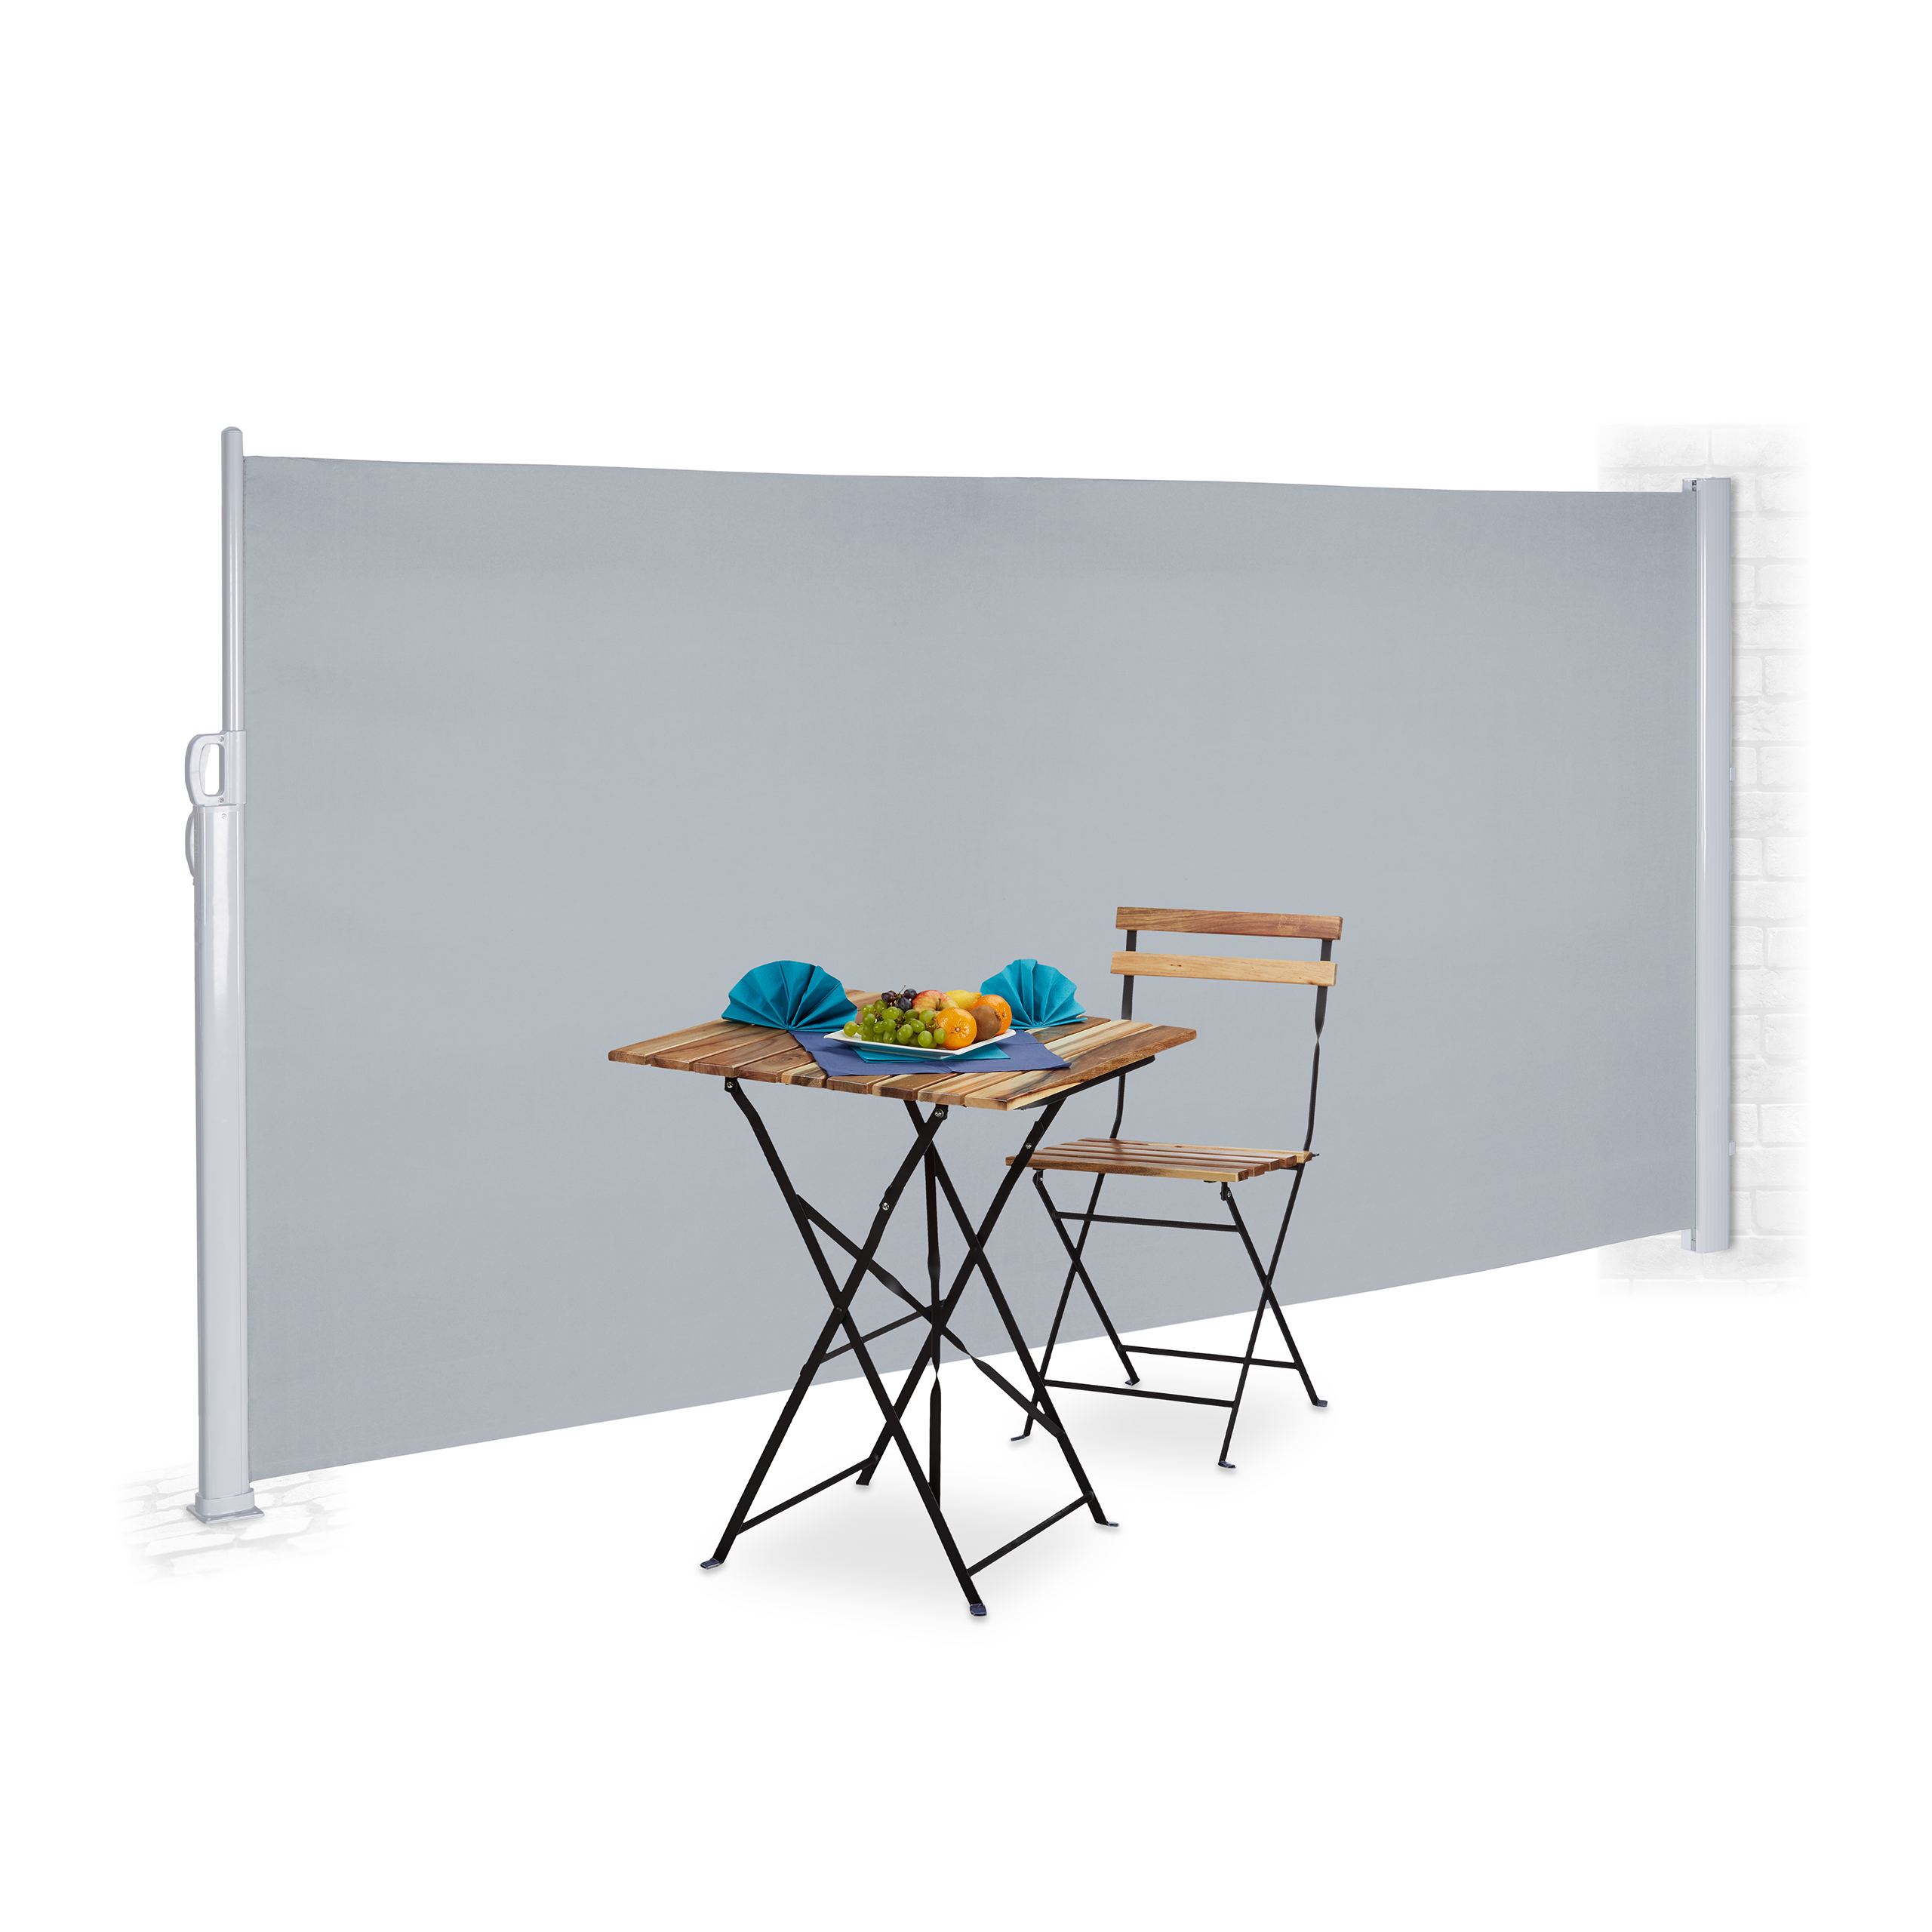 Side-Awning-Pull-Out-Gray-180-x-300-cm-Divider-Wind-Protection-Outdoor